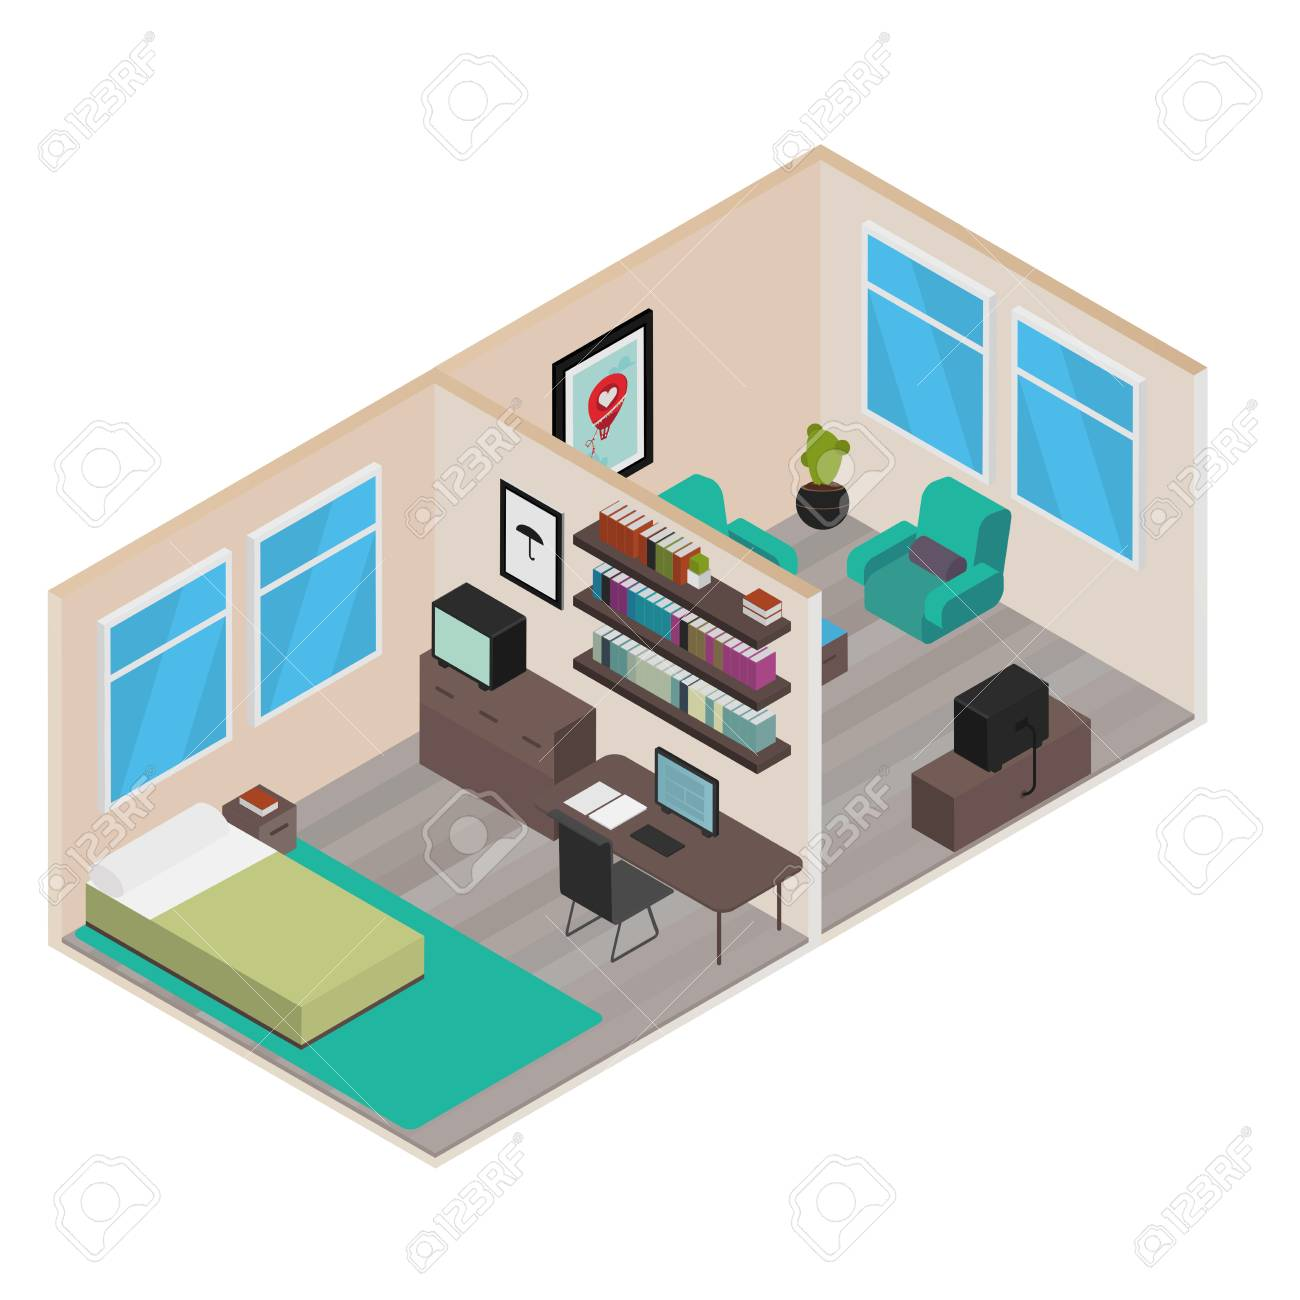 Isometric house rooms home set royalty free cliparts vectors and isometric house rooms home set stock vector 74724866 ccuart Choice Image